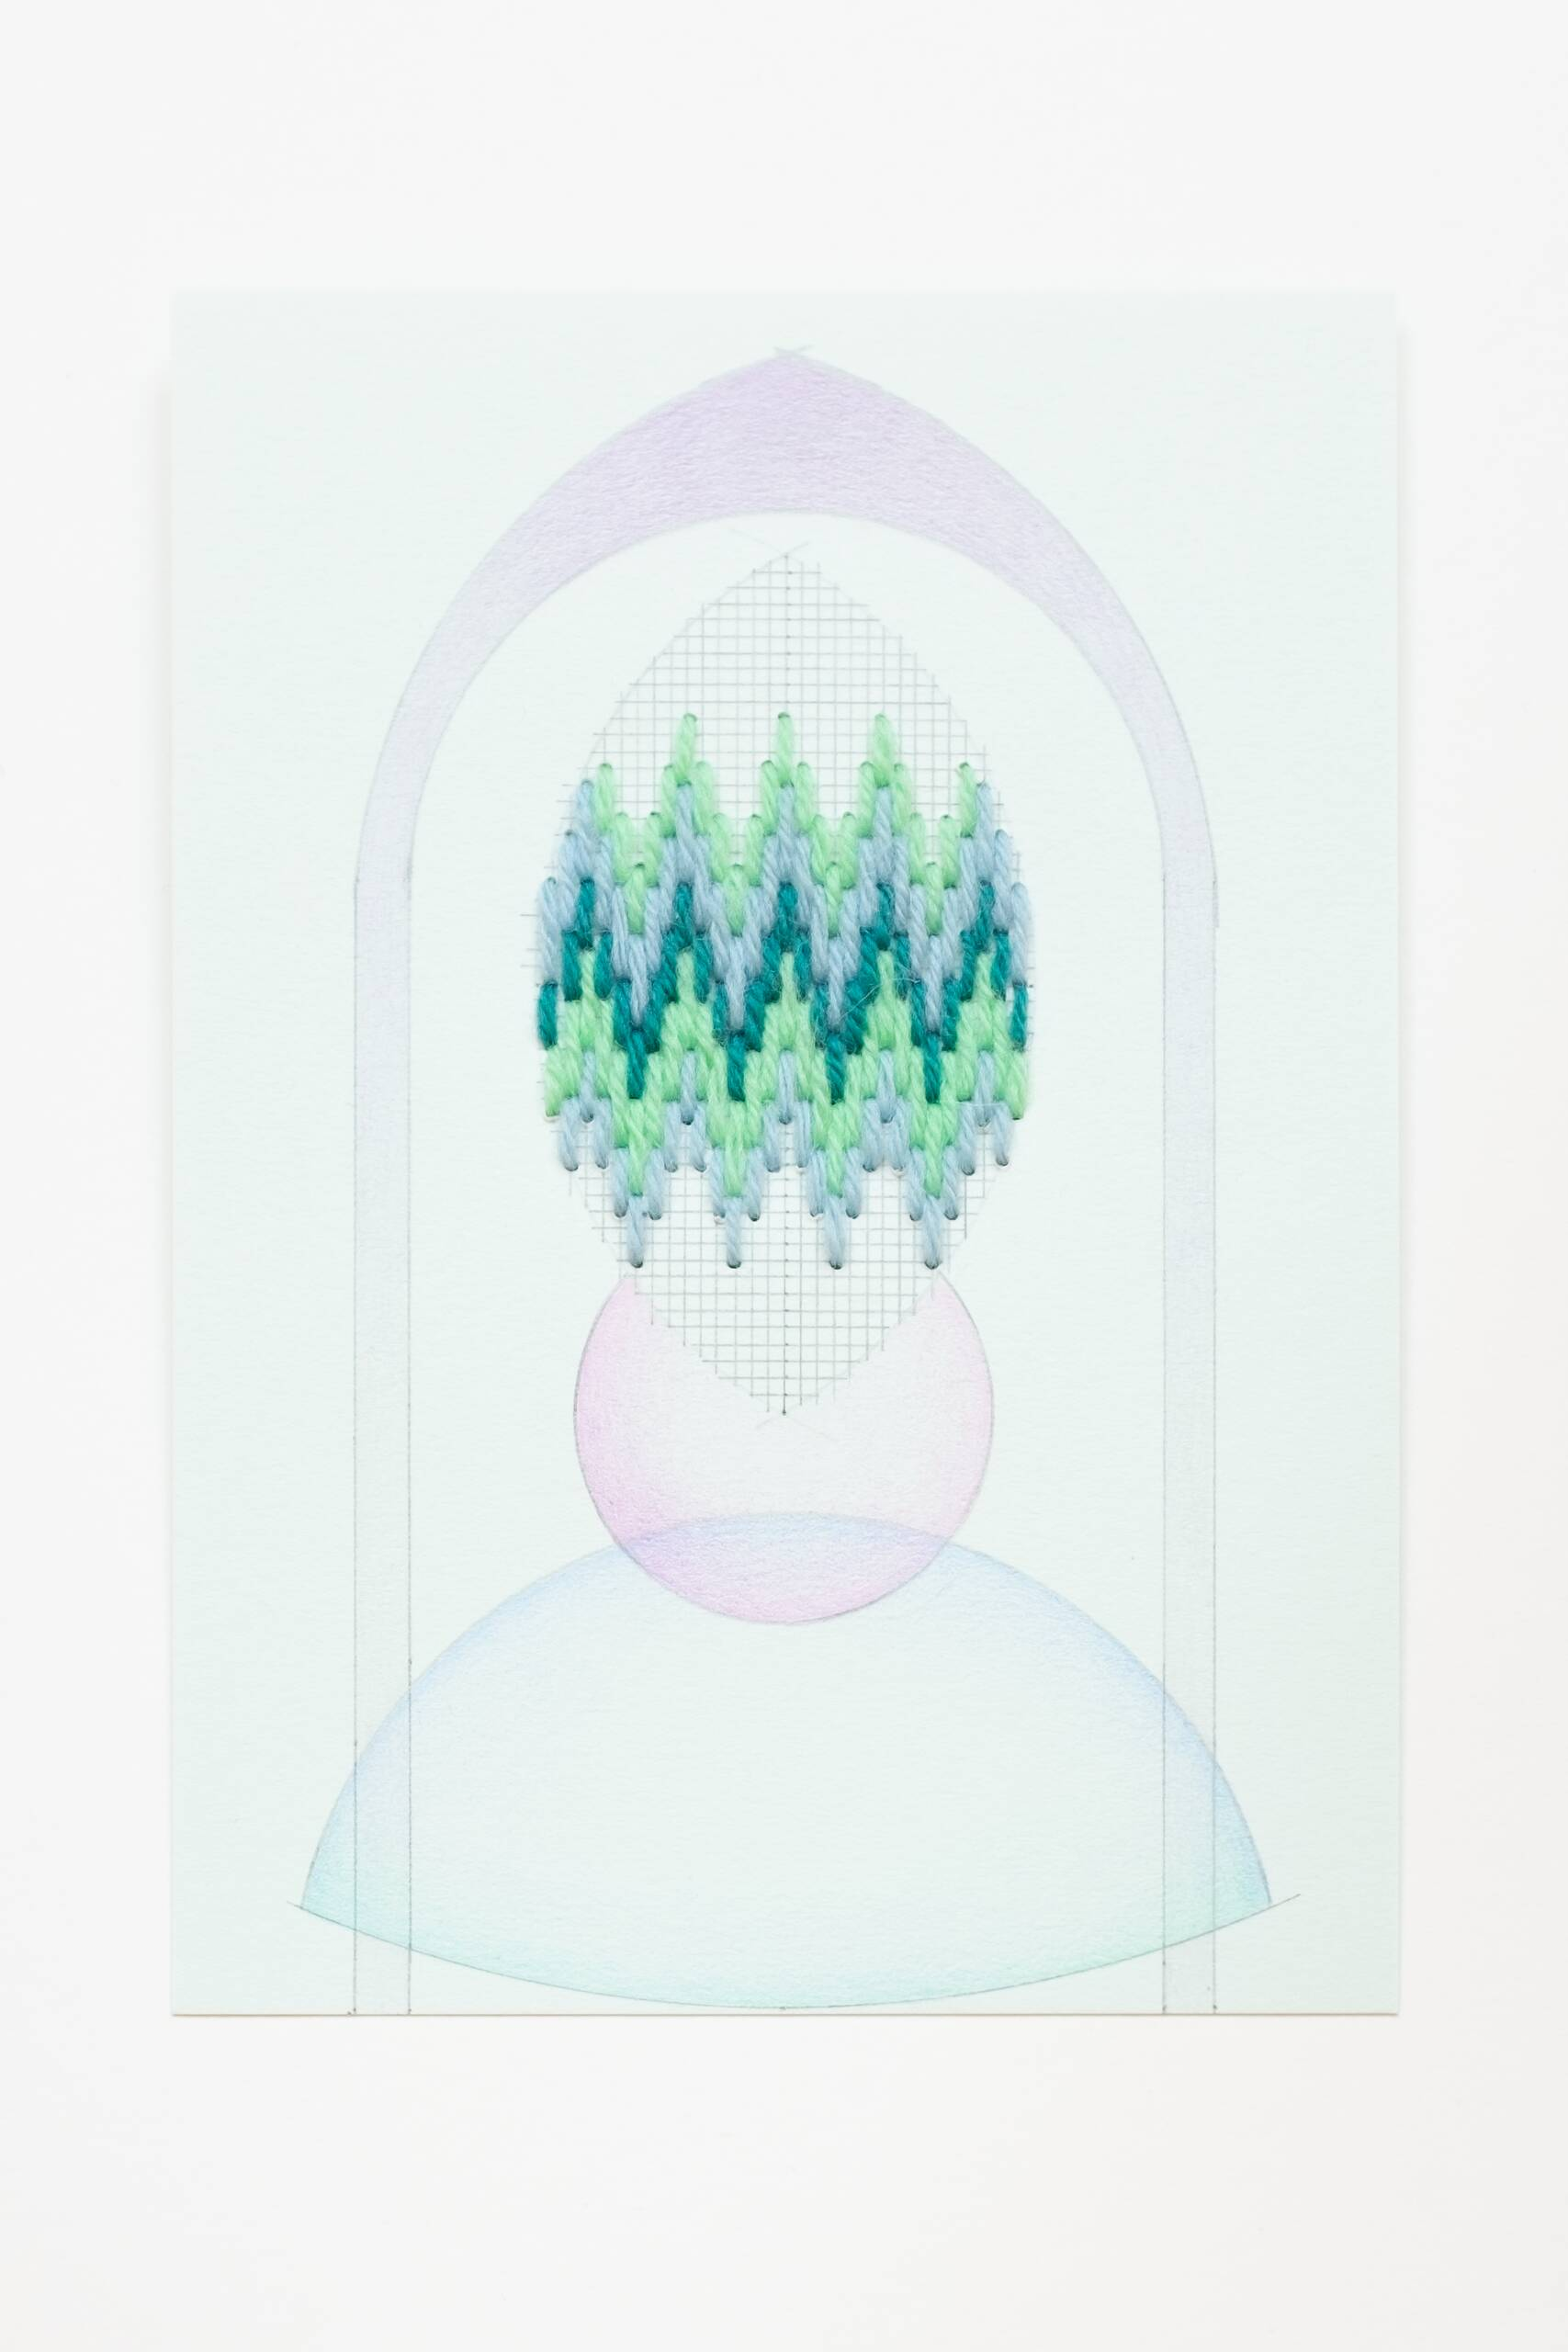 Bargello vesica piscis [blue-green on blue-green], Hand-embroidered wool thread, pencil and colored pencil on paper, 2020